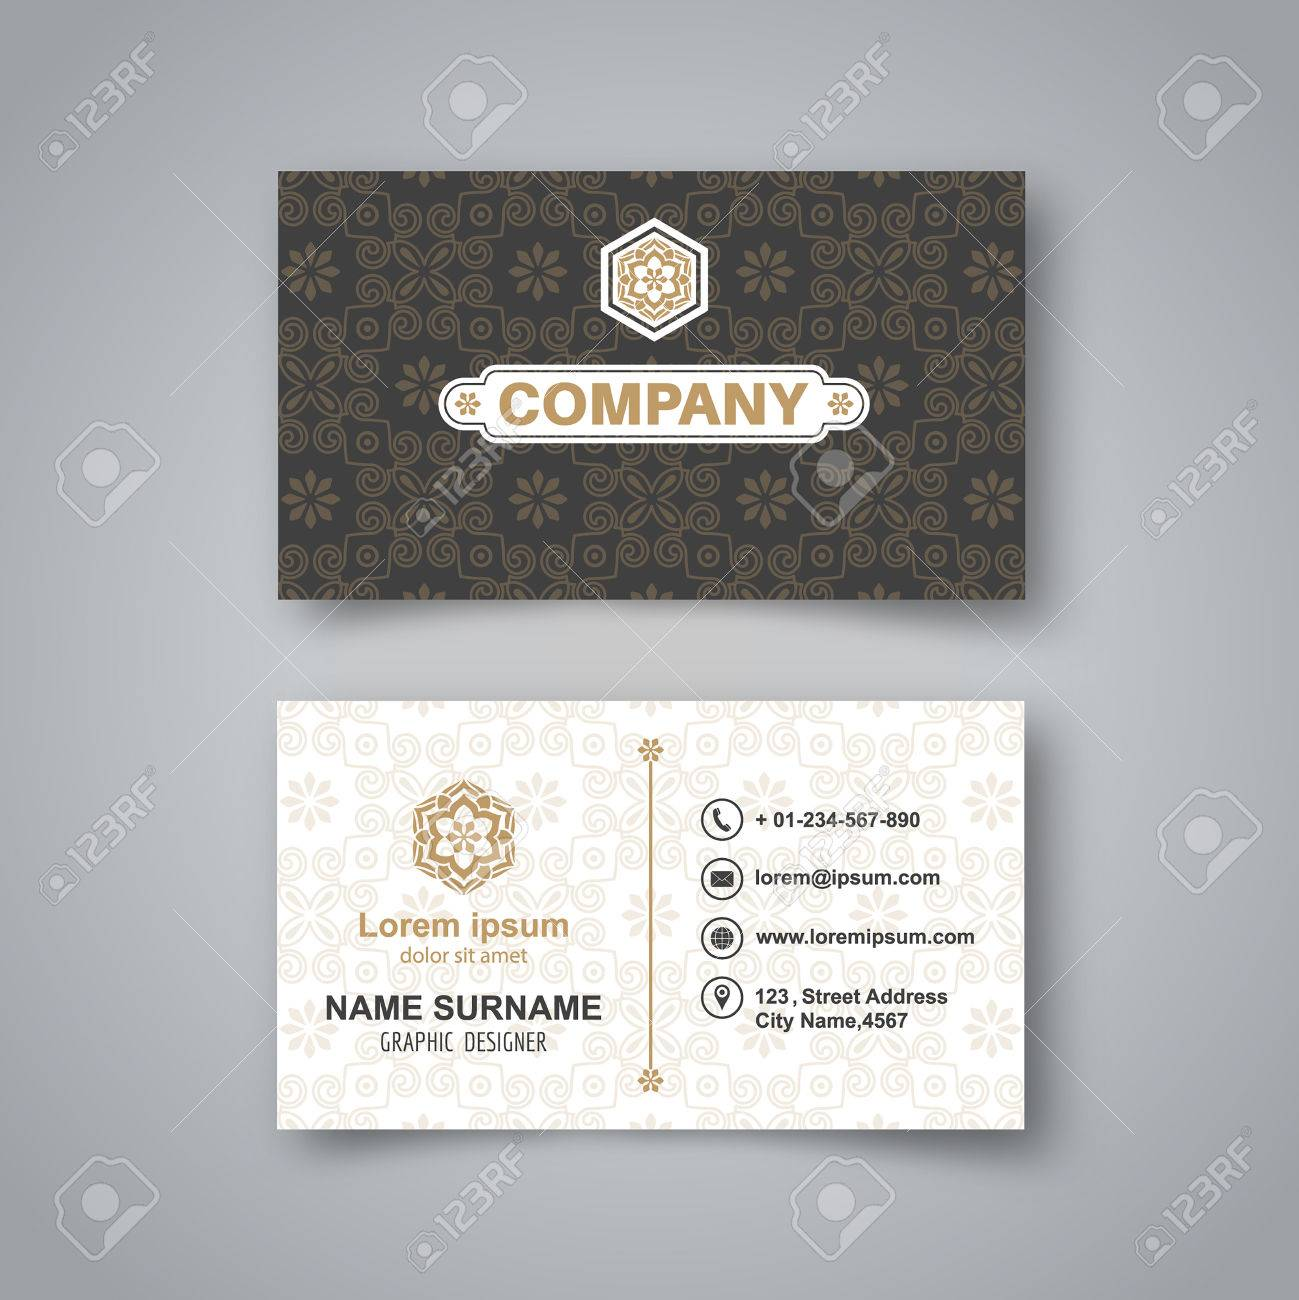 Blank Business Card Template With Flower Pattern And Realistic ...